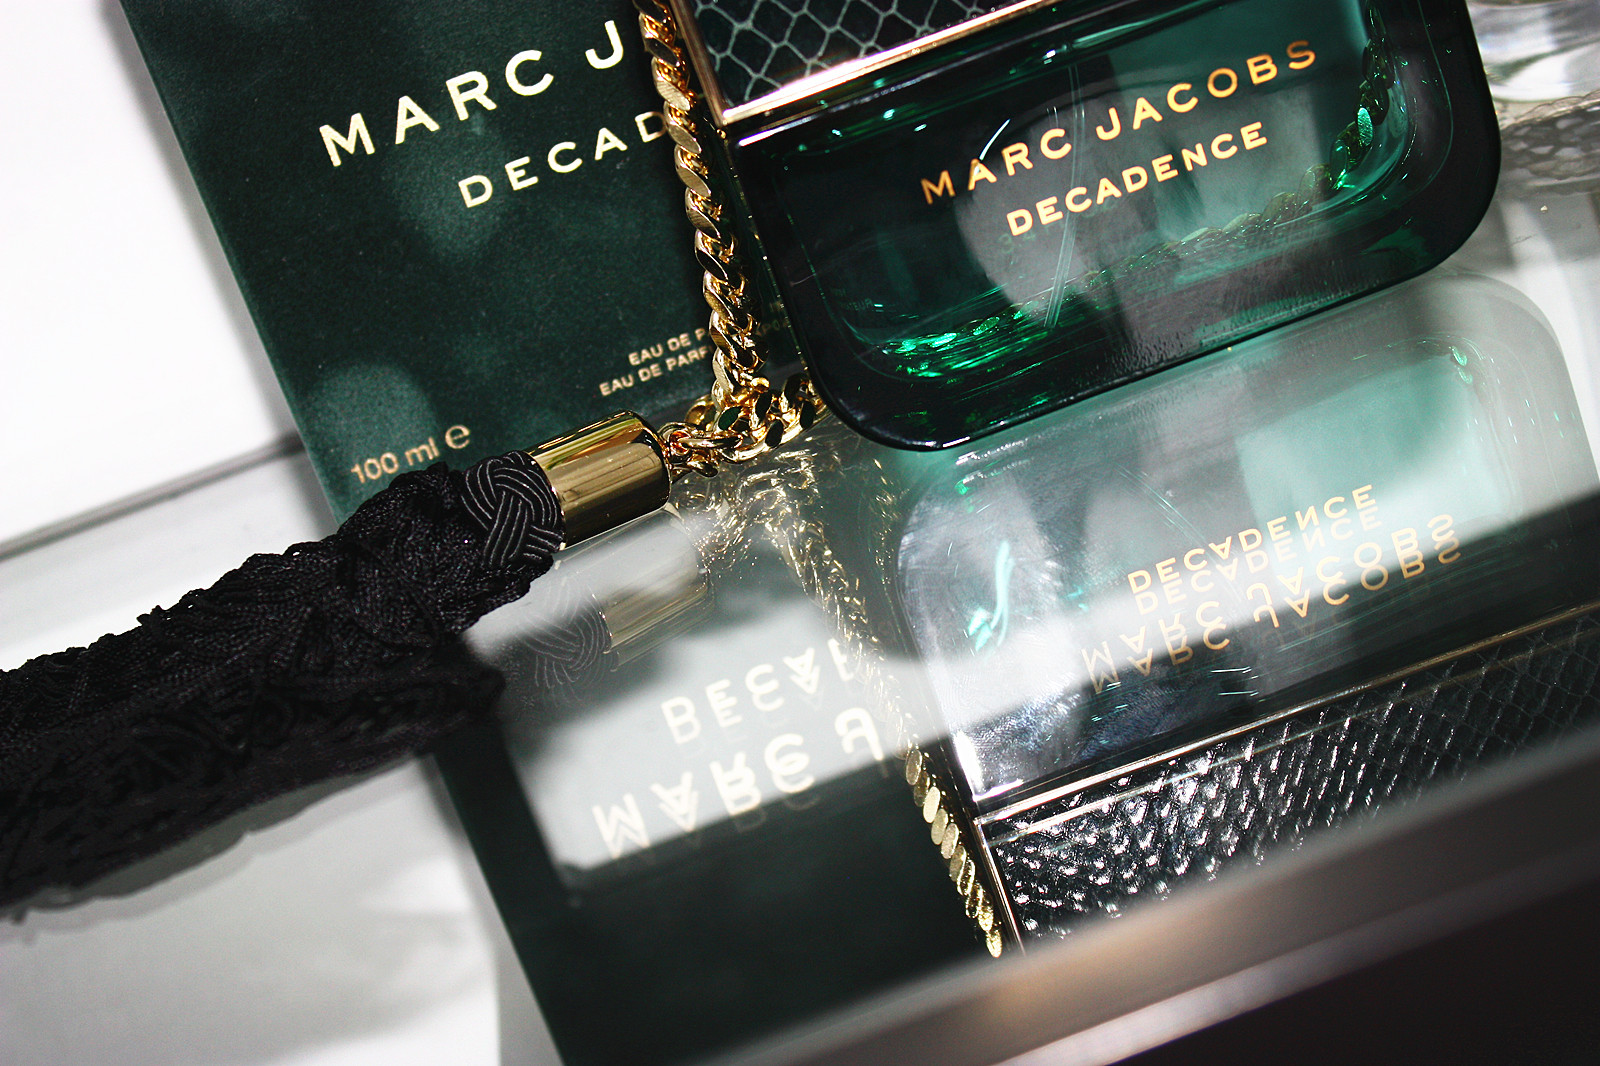 marc jacobs decadence opinie, decadence perfumy, marc jacobs perfumy